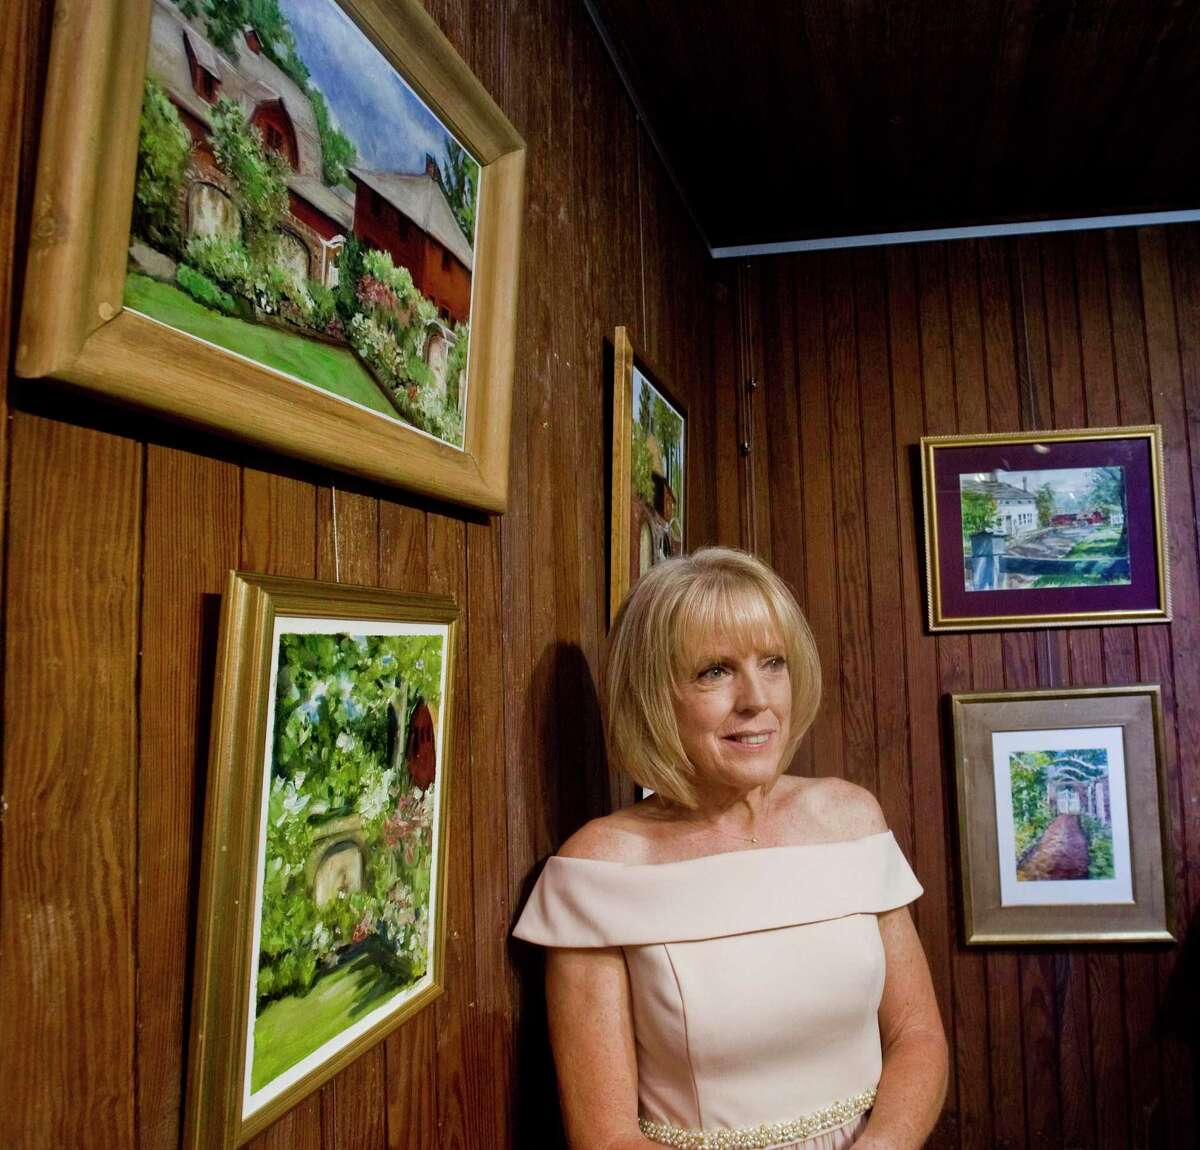 Judi Lynch, mother-of-the-bride, assembled a gallery of original artwork for guests to enjoy in the Cass Gilbert Carriage Barn on the day of her daughter's wedding at Keeler Tavern Museuem in Ridgefield. Friday, June 25, 2021.